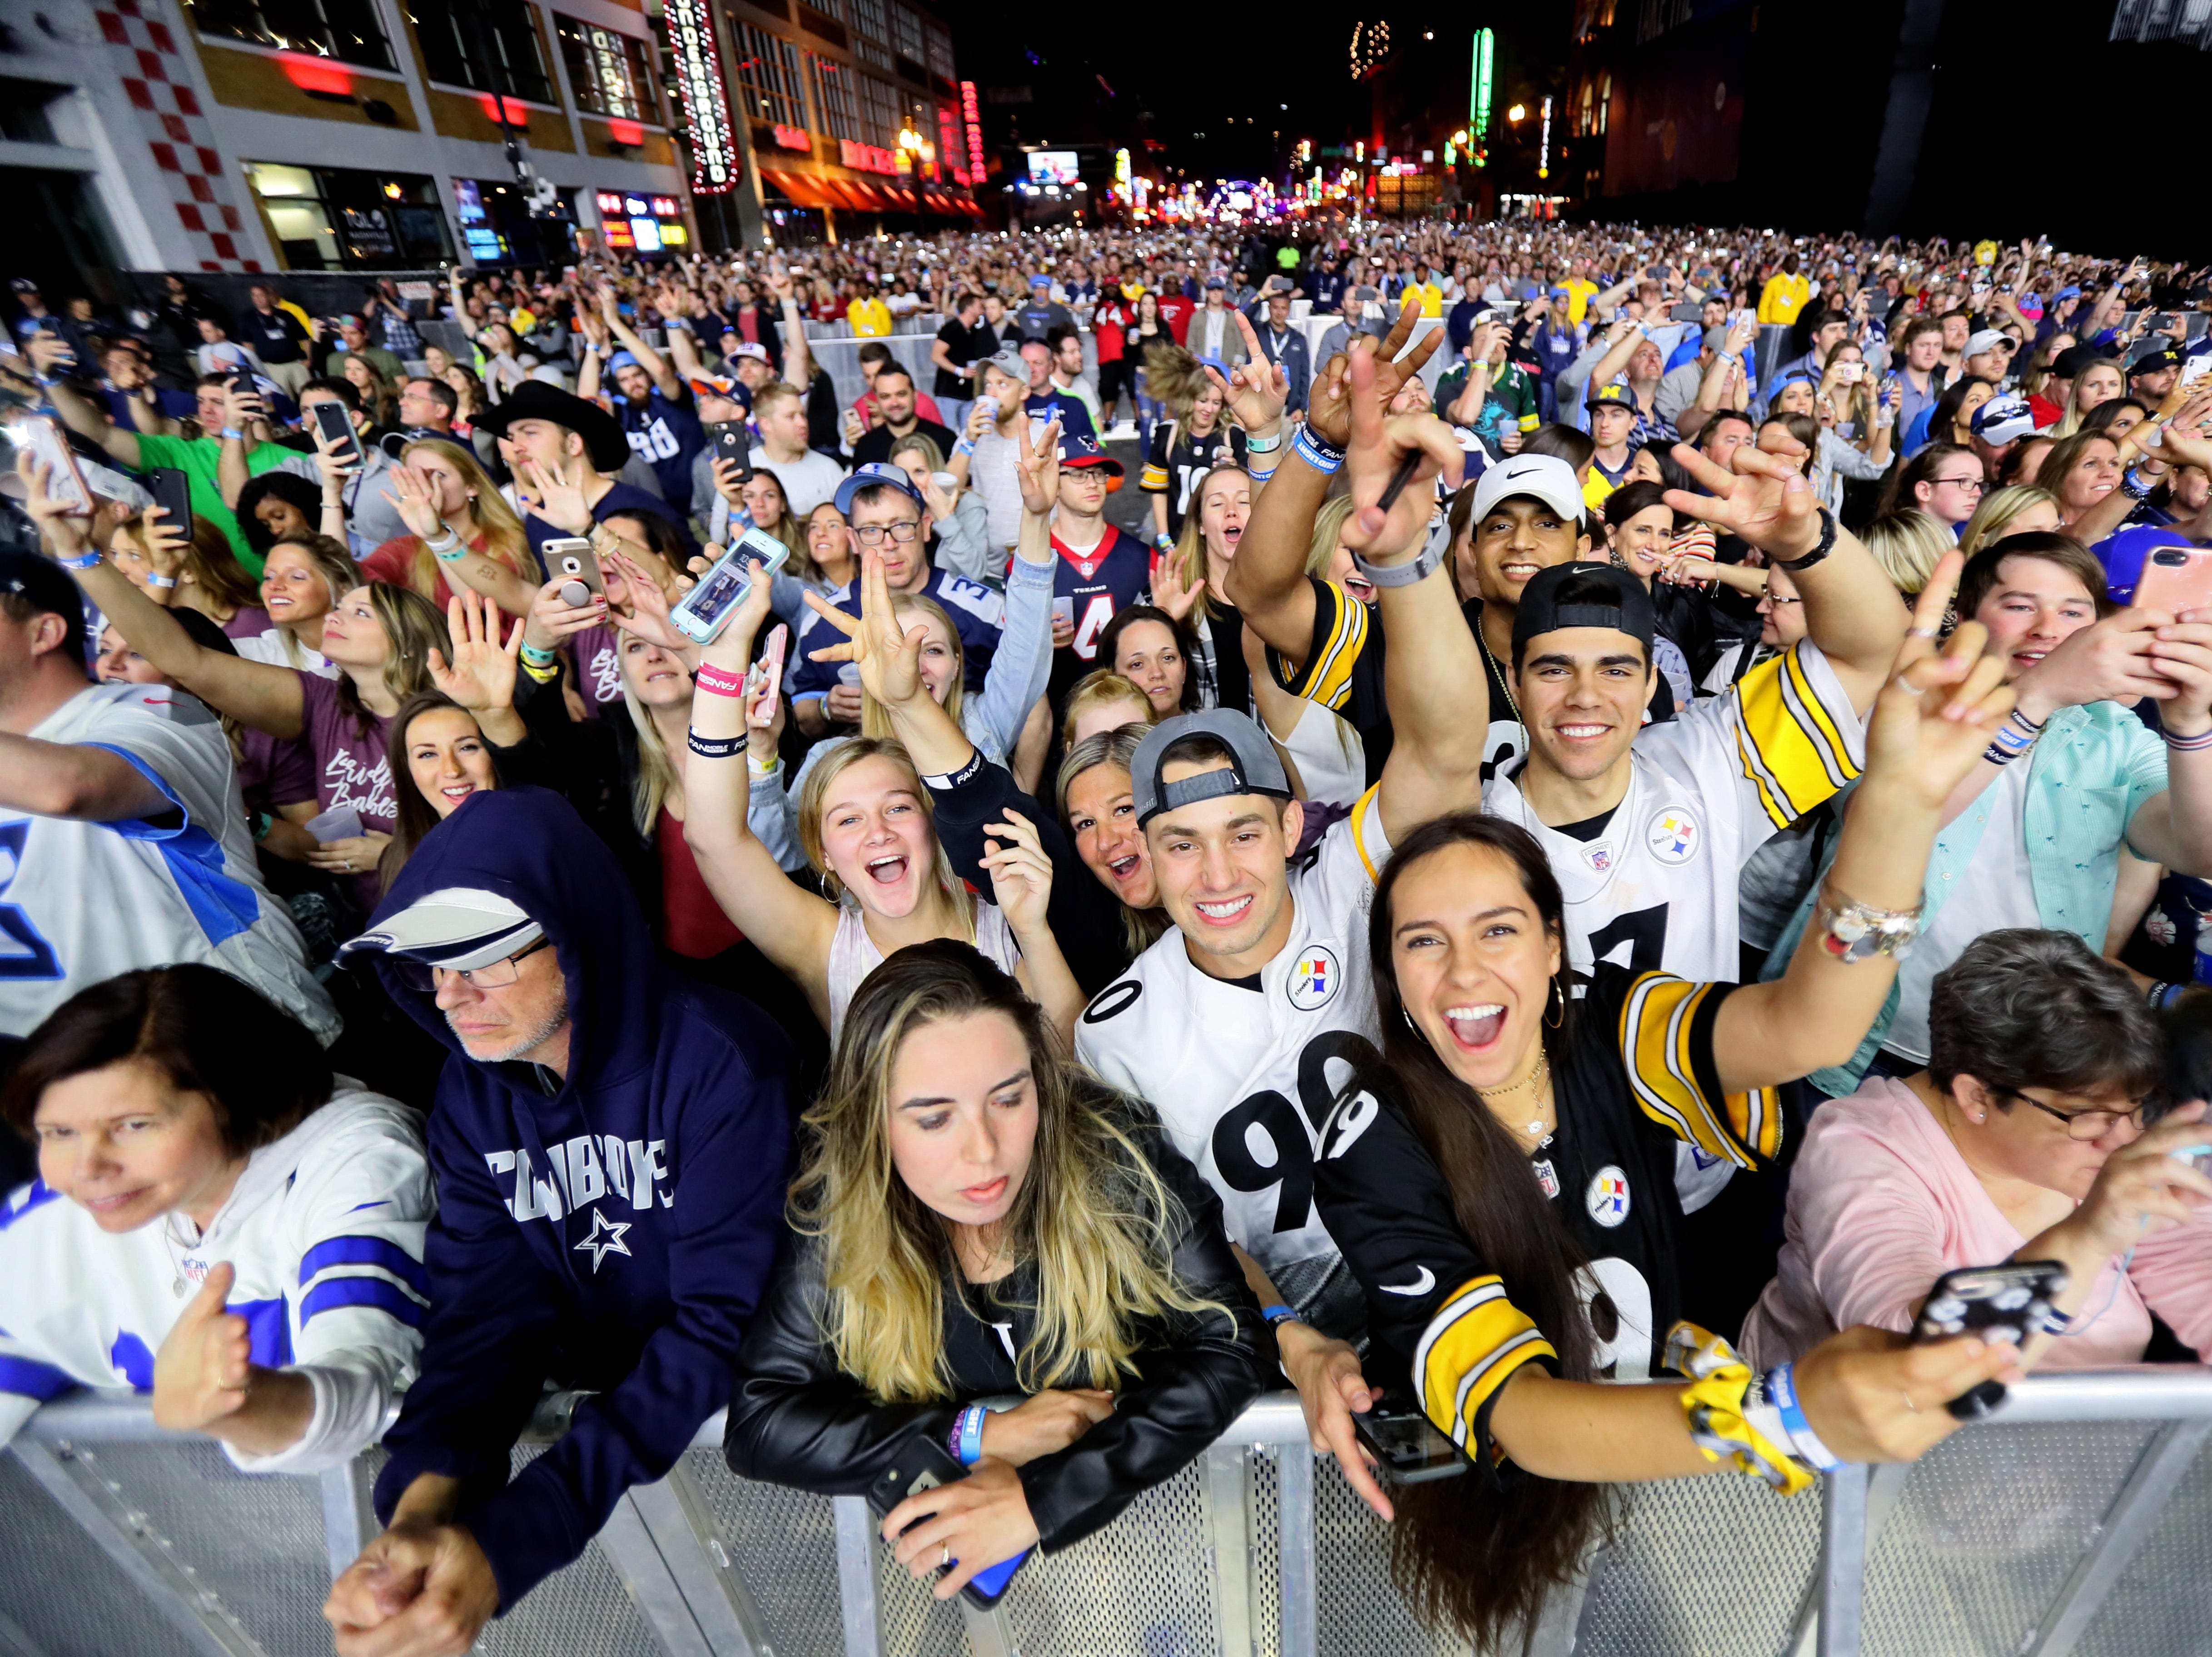 Fans listen as Tim McGraw performs after the NFL draft's second night on Lower Broadway in downtown Nashville on Friday, April 26, 2019.